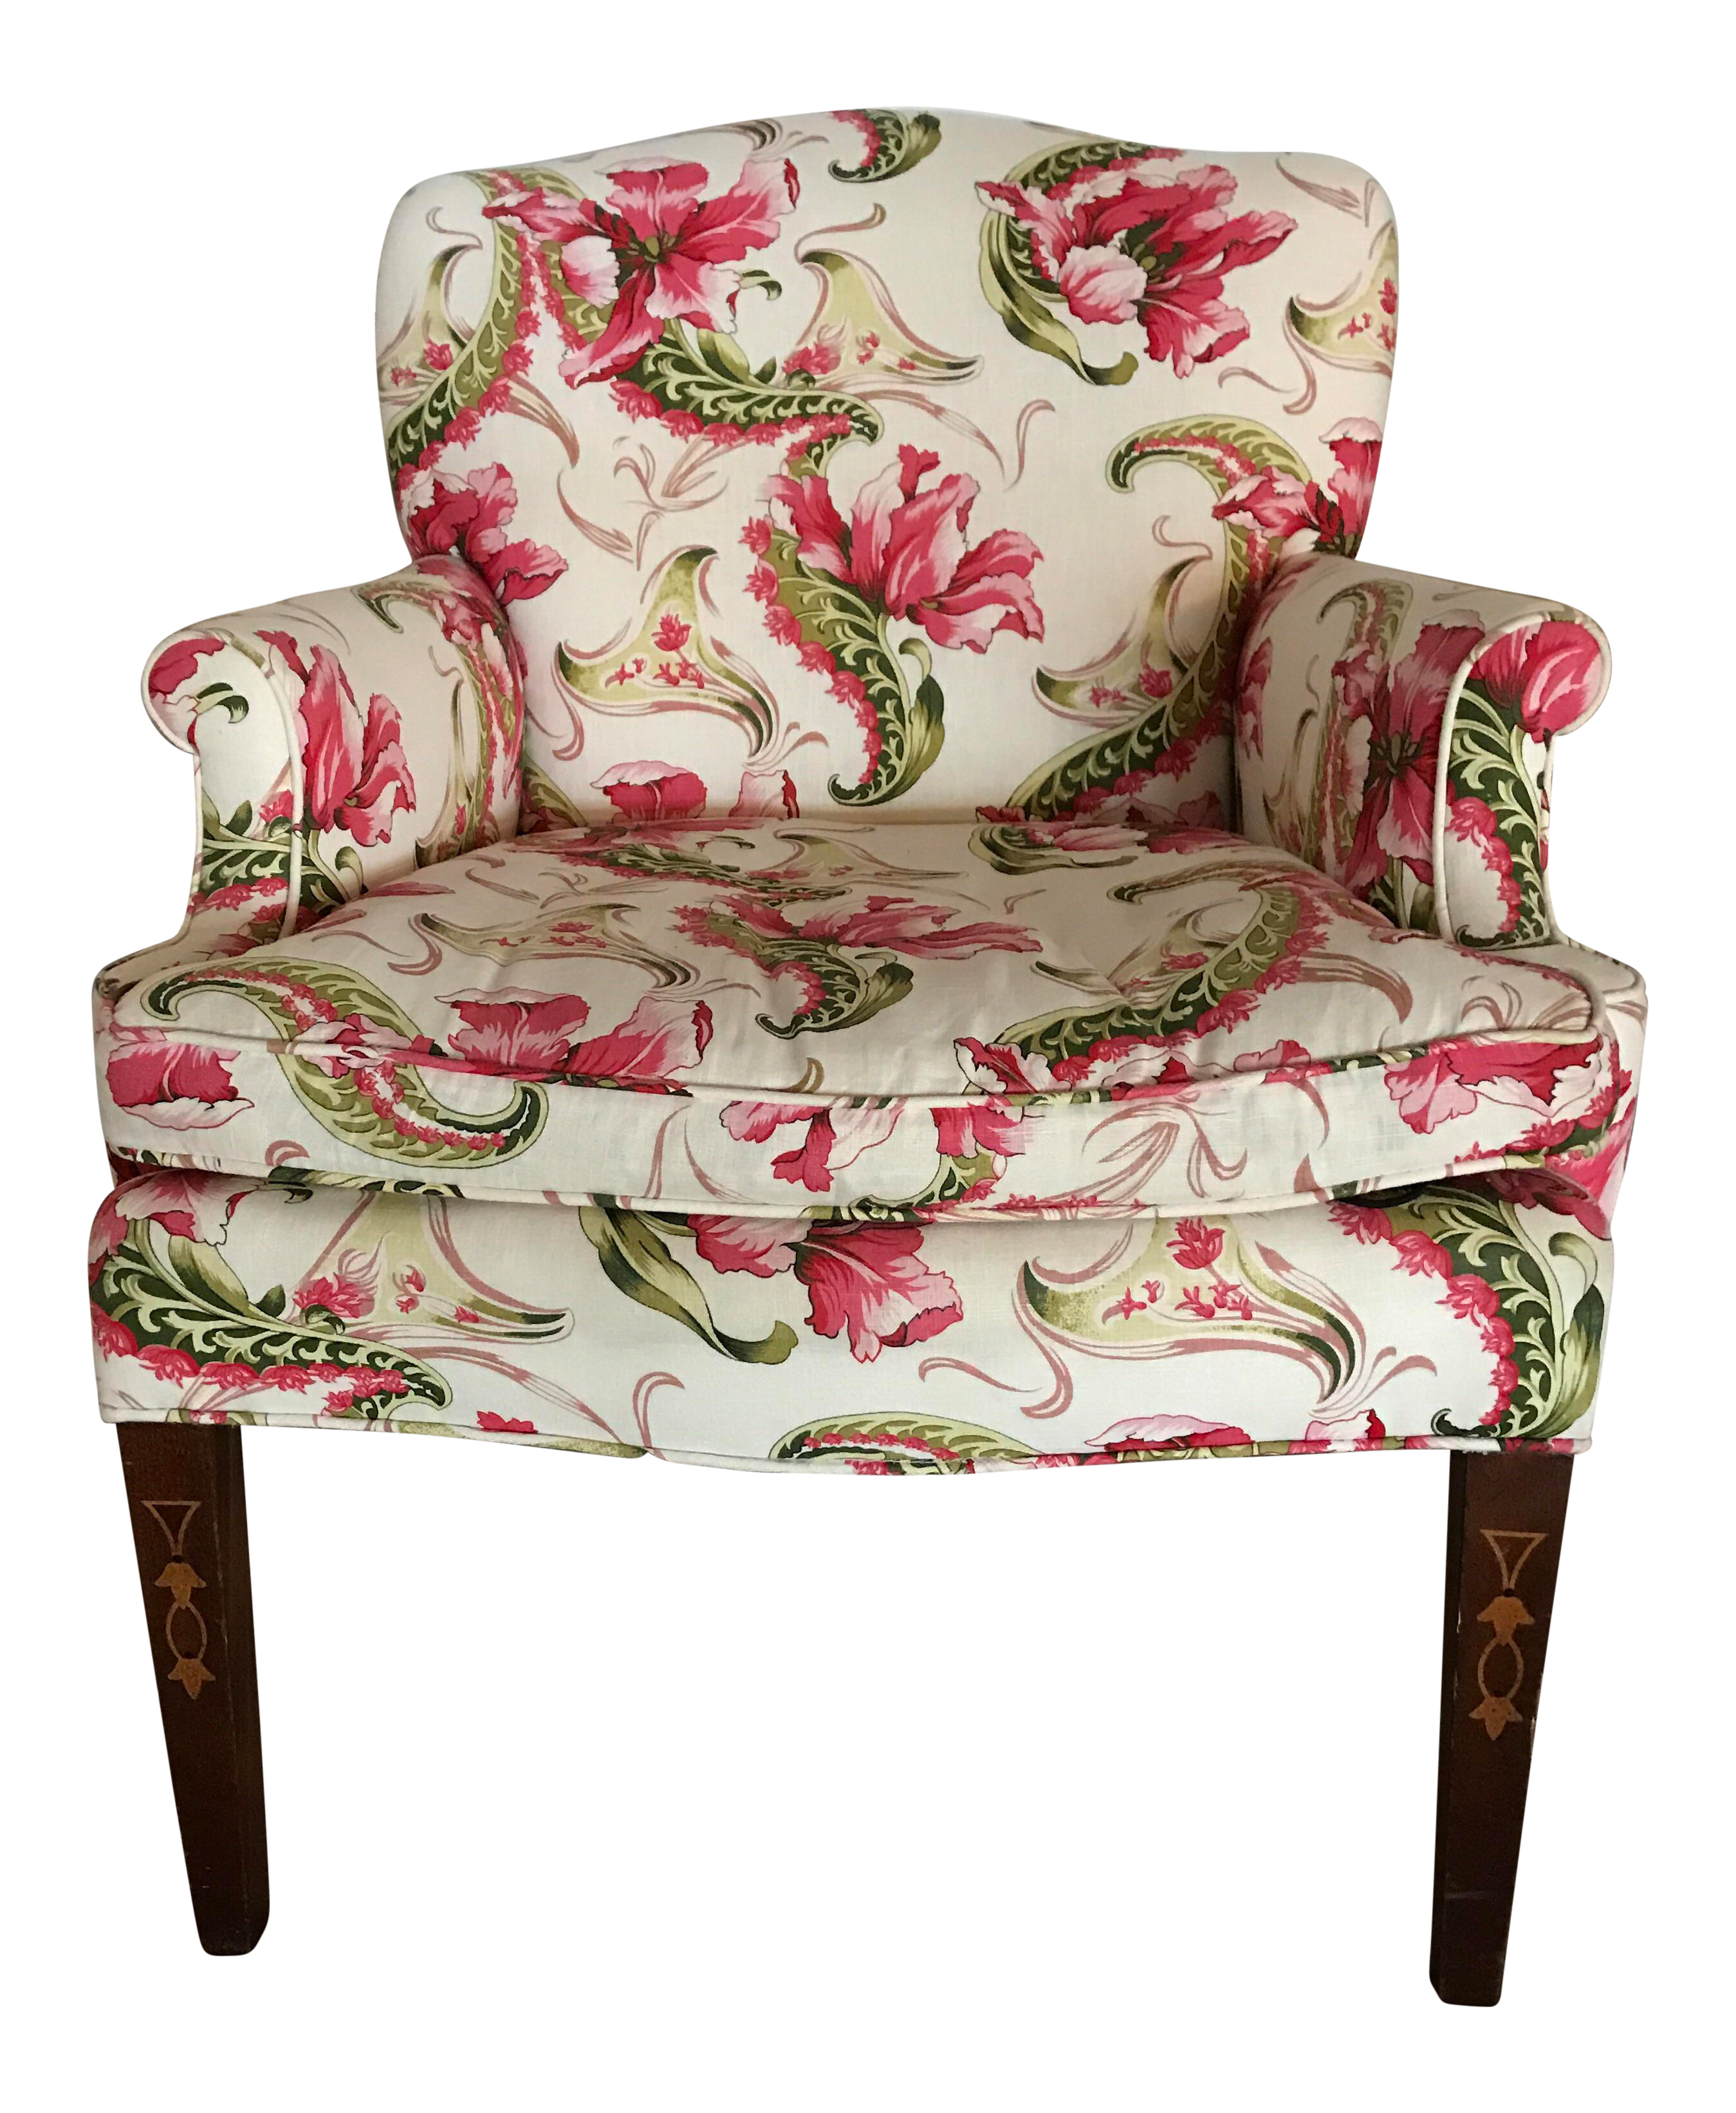 sc 1 st  Chairish & English Country Floral Accent Chair | Chairish